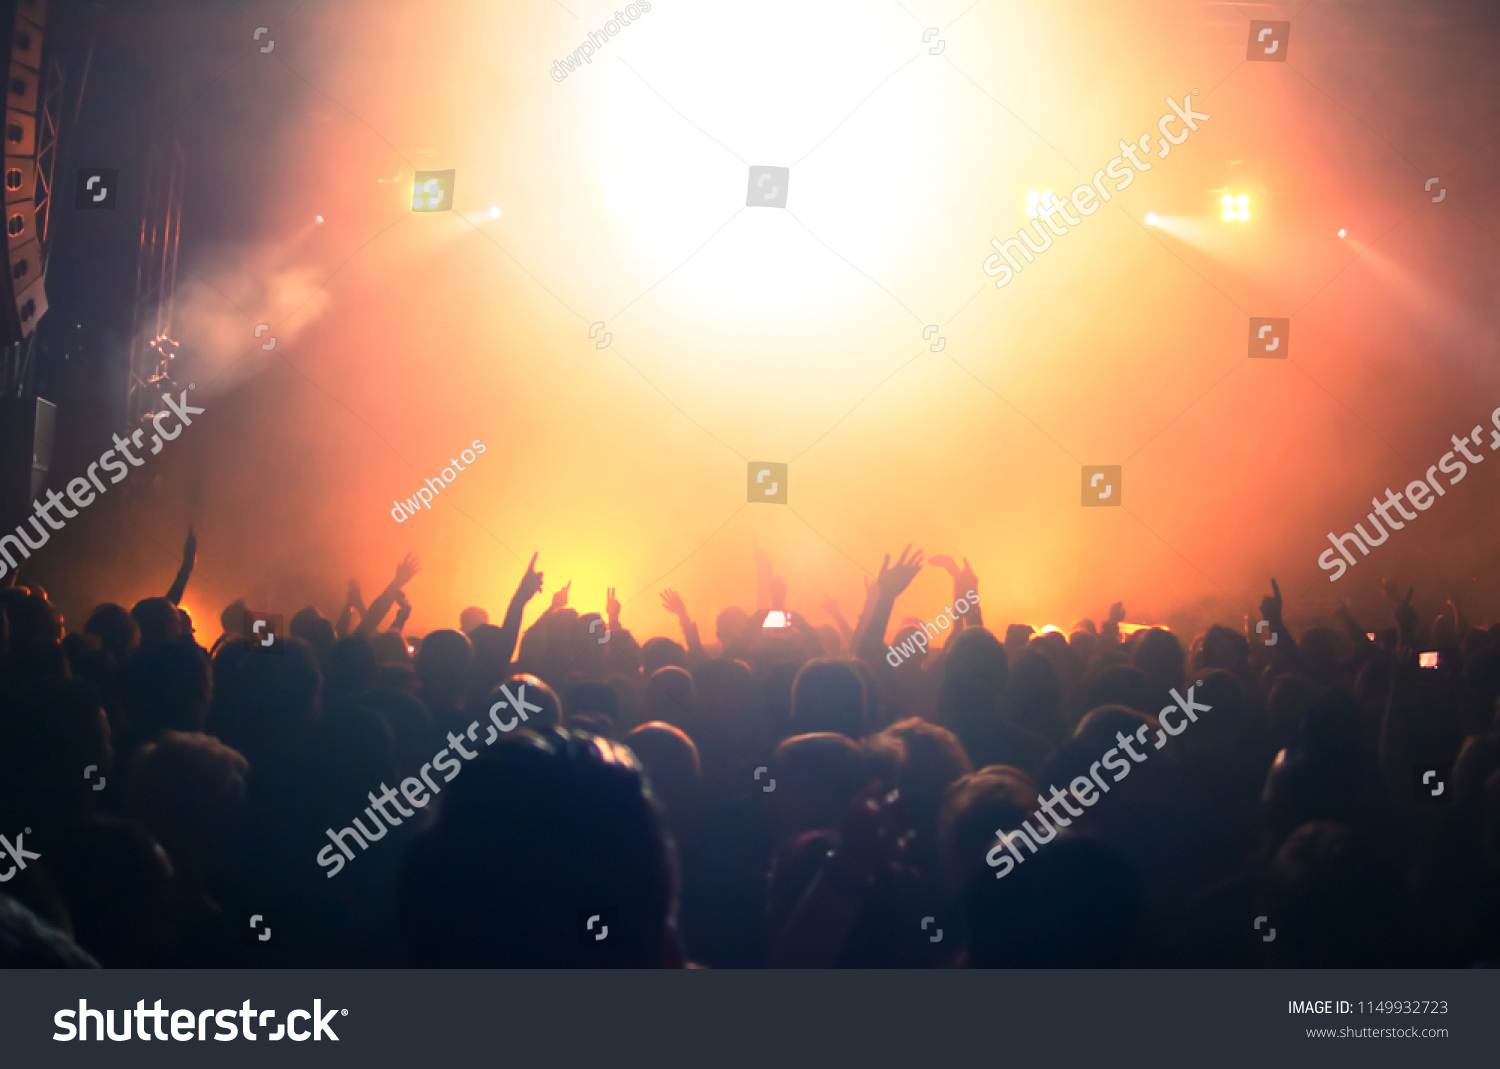 Concert crowd at rock concert #1149932723